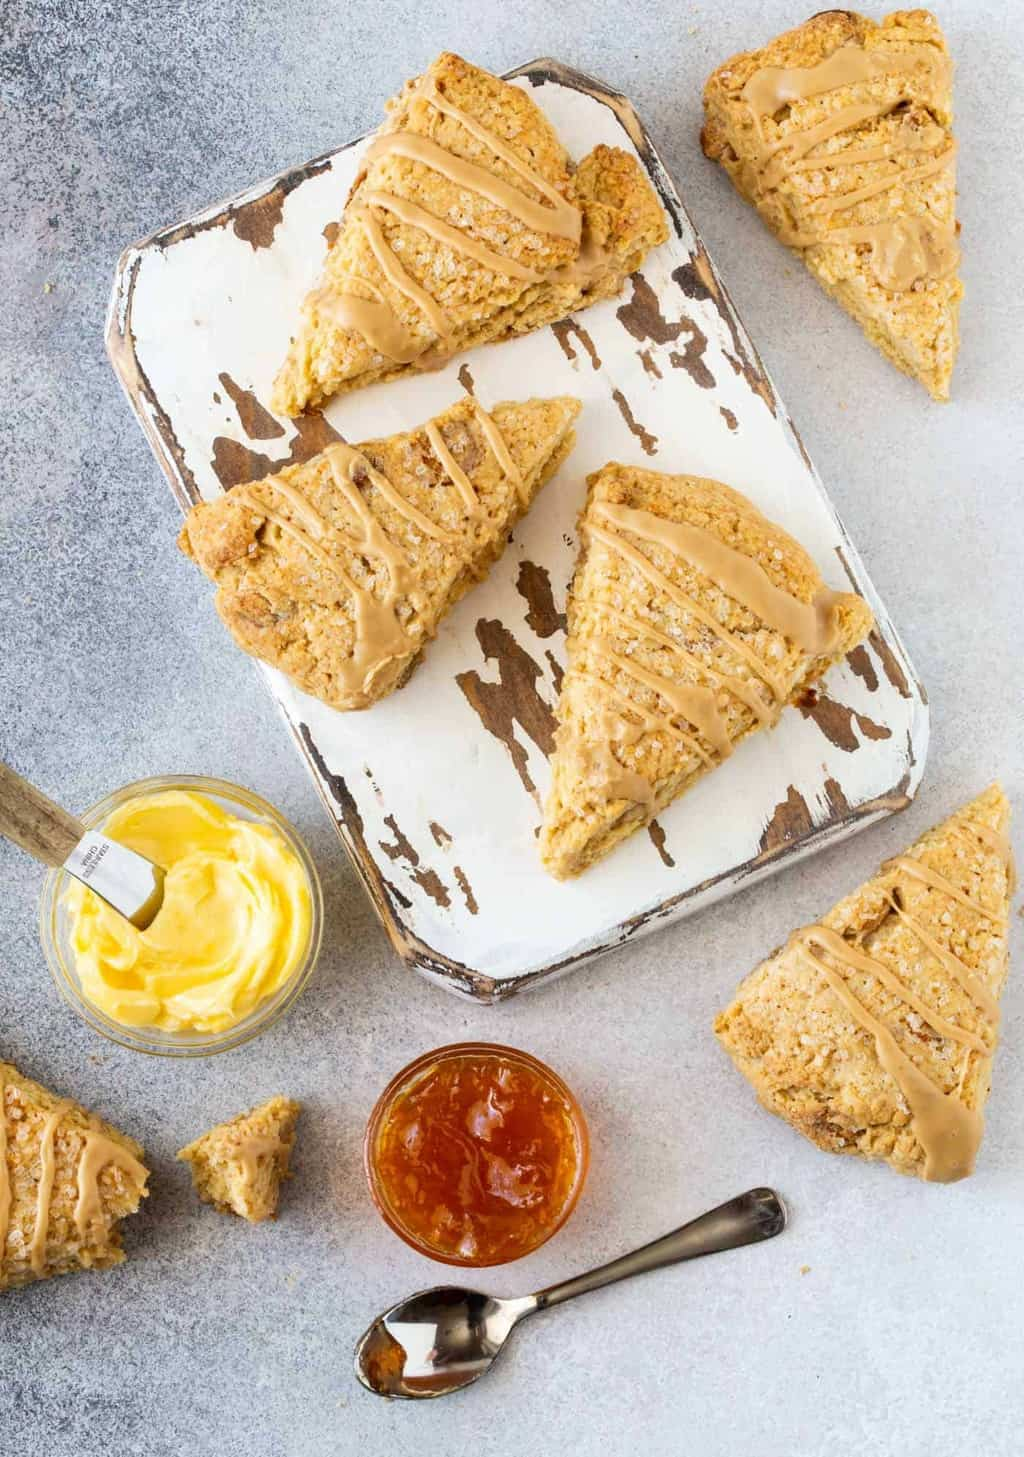 Irish Cream Scones on white wood board, drizzled with Irish Cream Liqueur glaze and garnished with fresh butter and apricot jam.